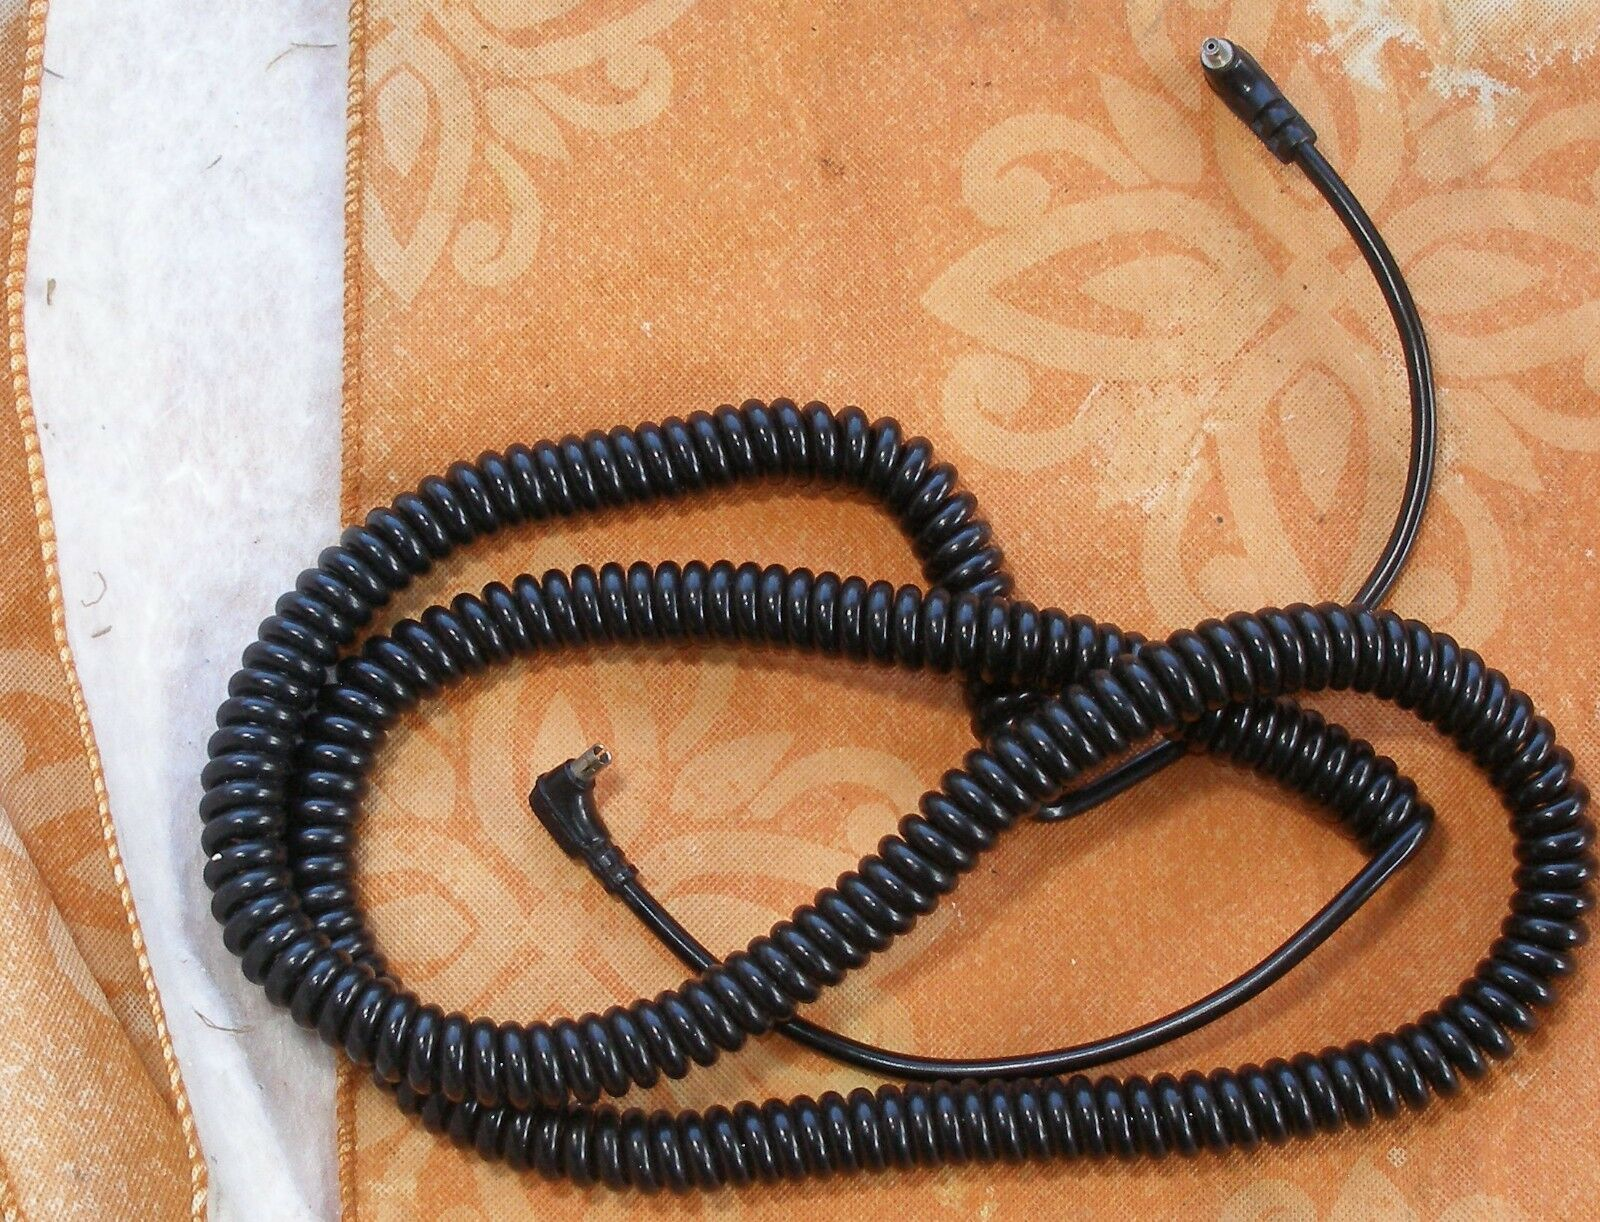 1 very long 4 foot (unstretched, coiled) long coiled PC sync cable